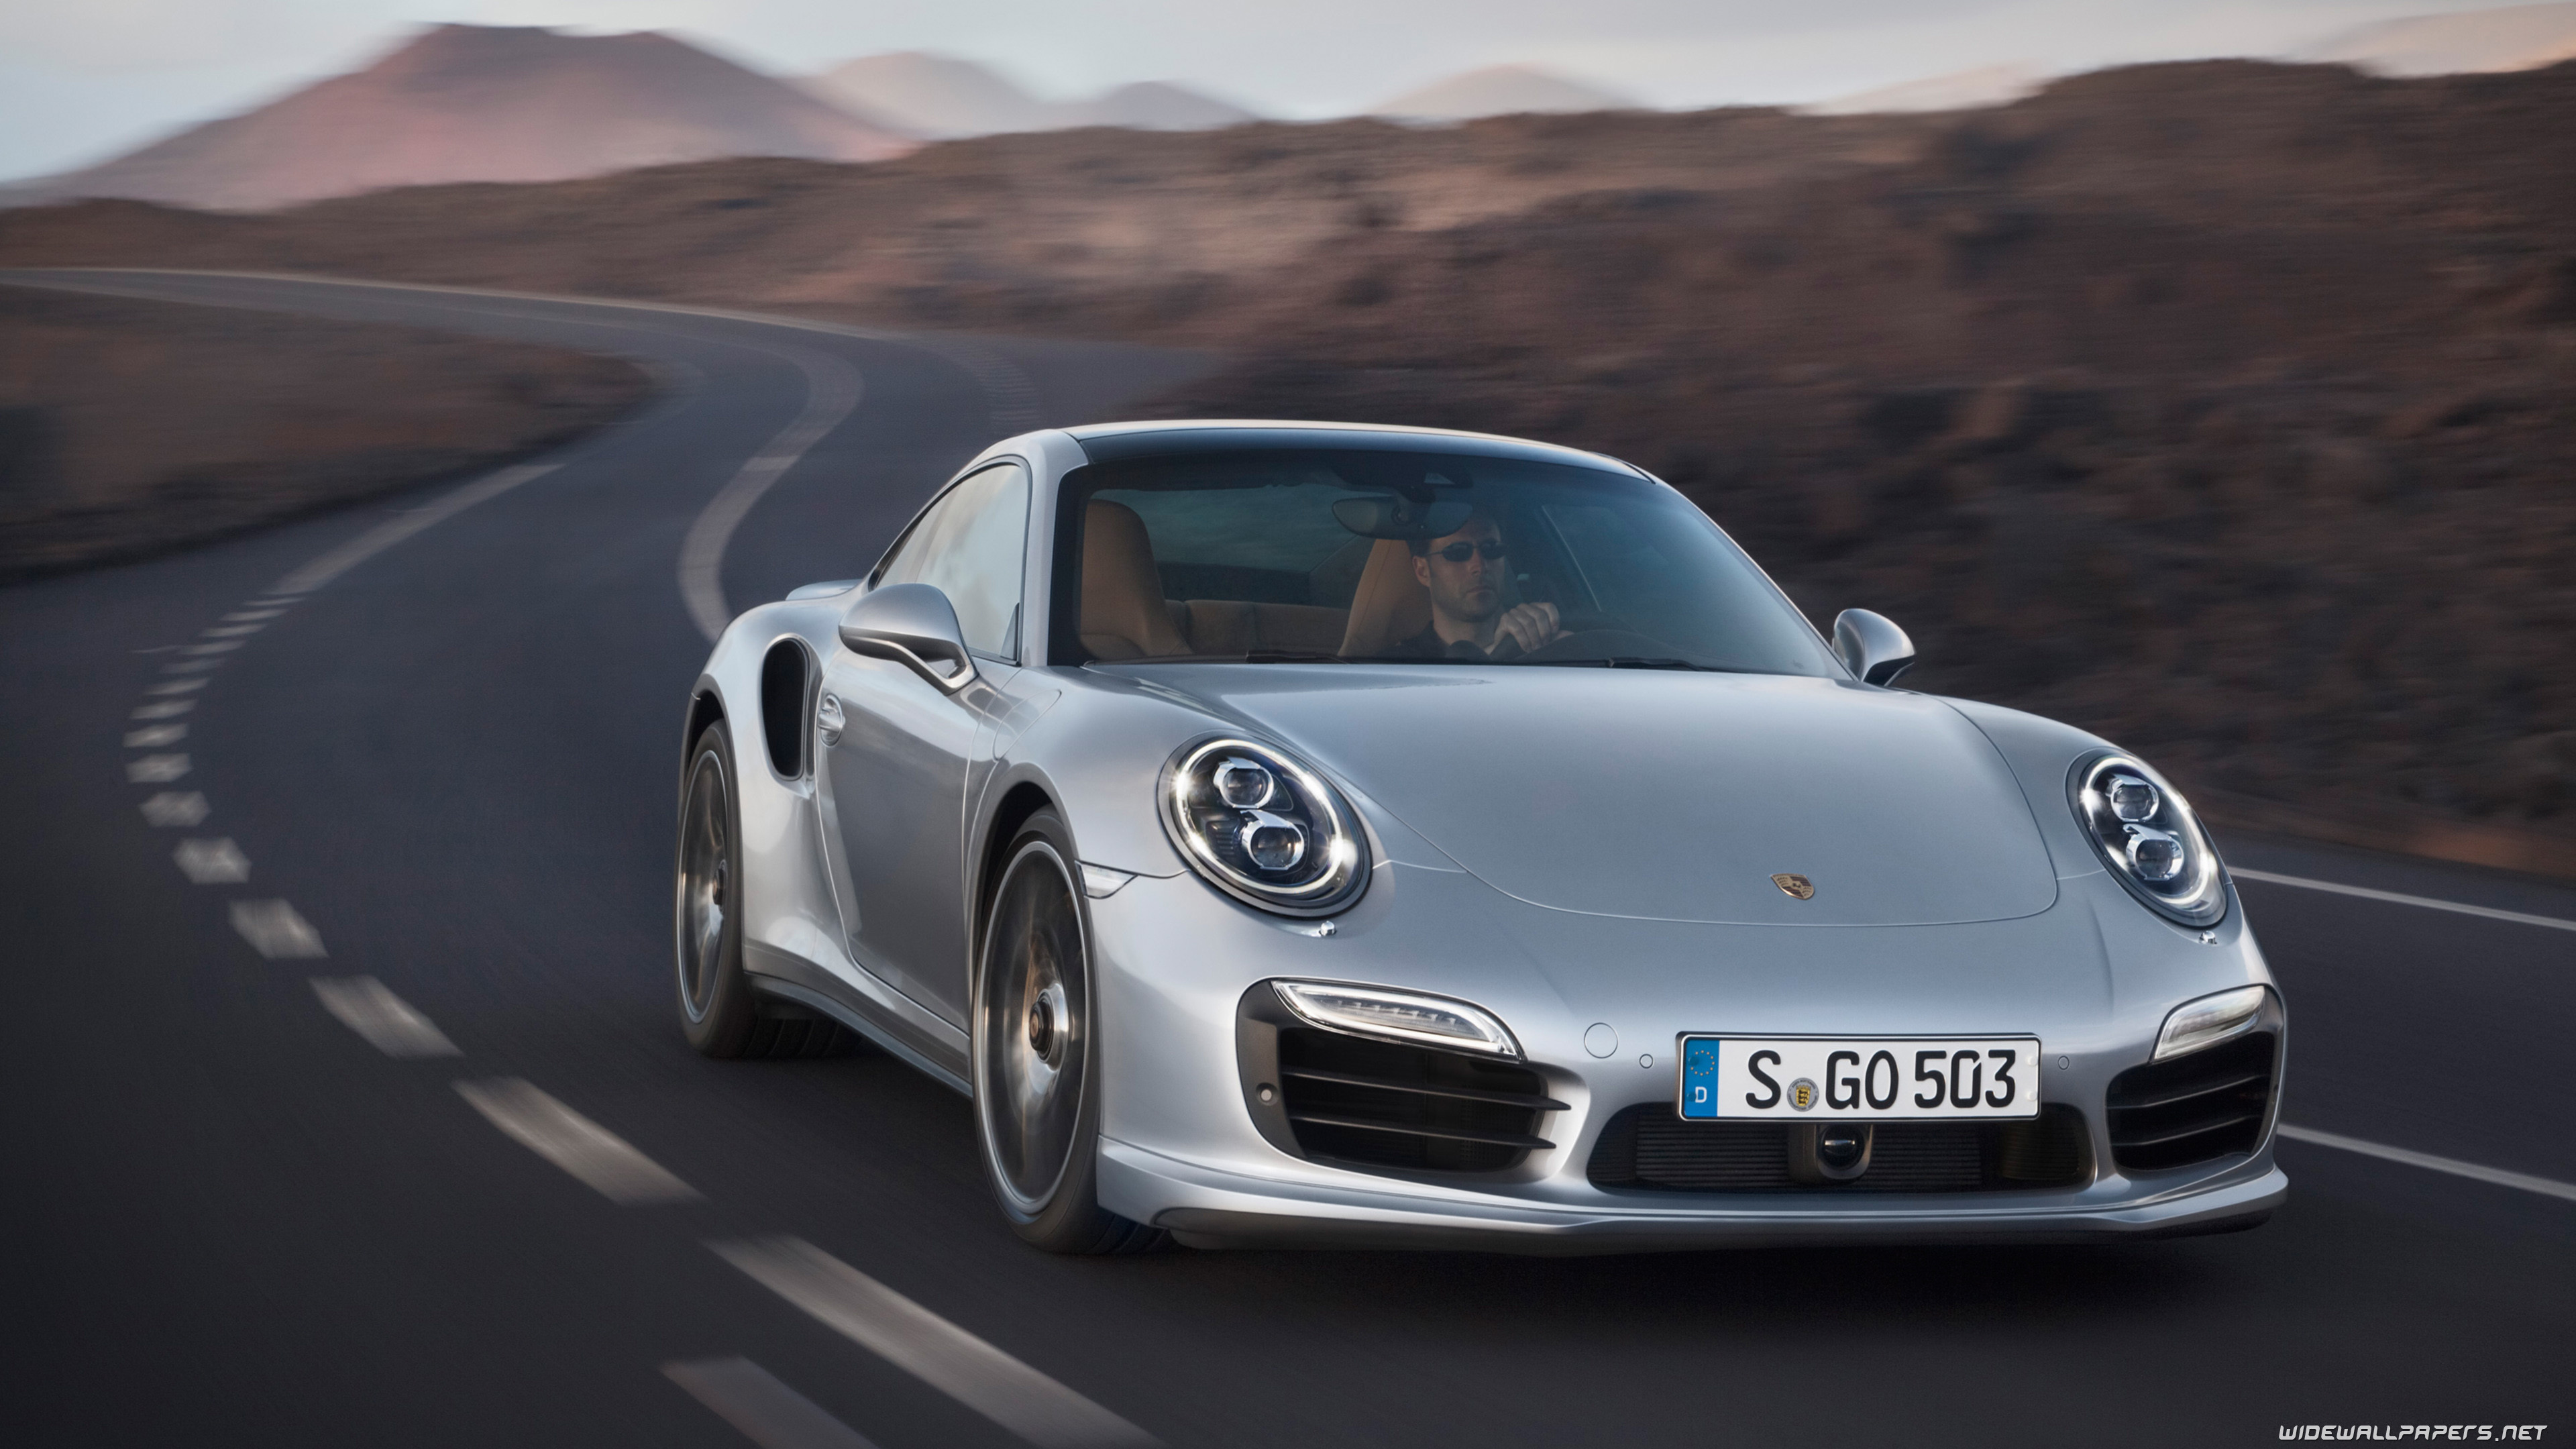 3840x2160 Porsche 911 Turbo S car wallpapers ...